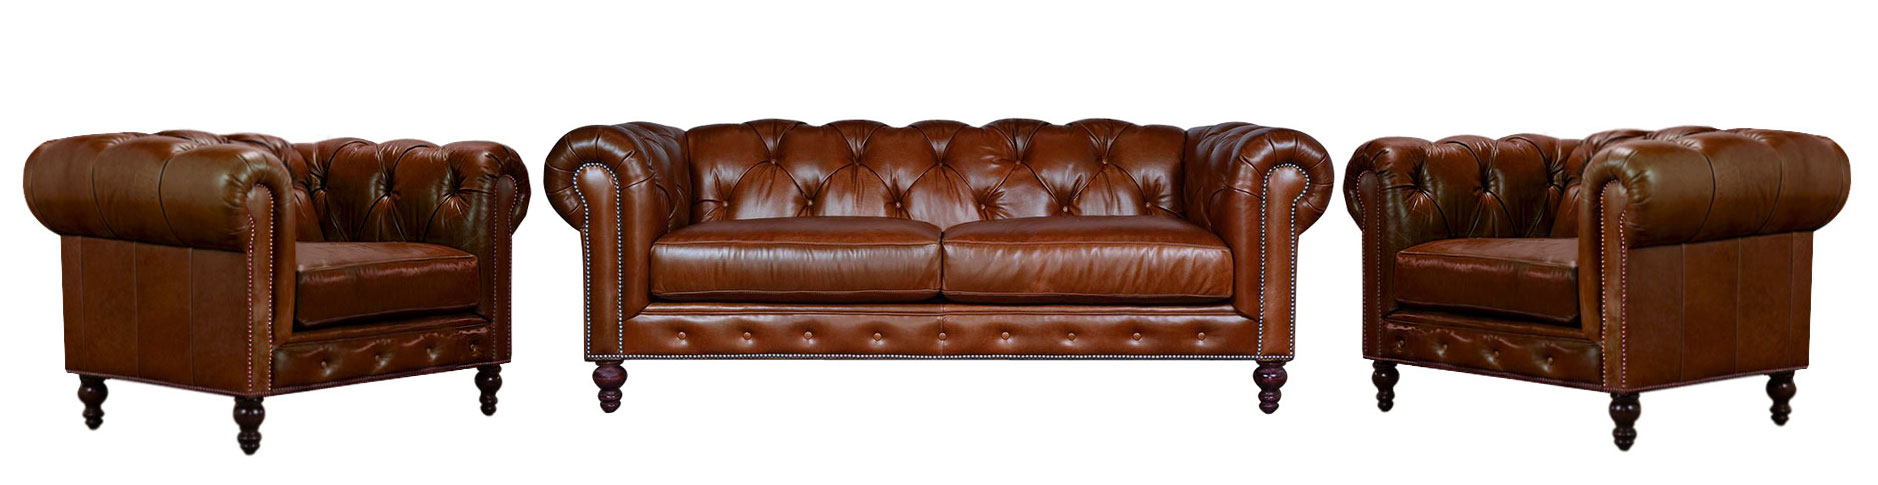 komplet chesterfield